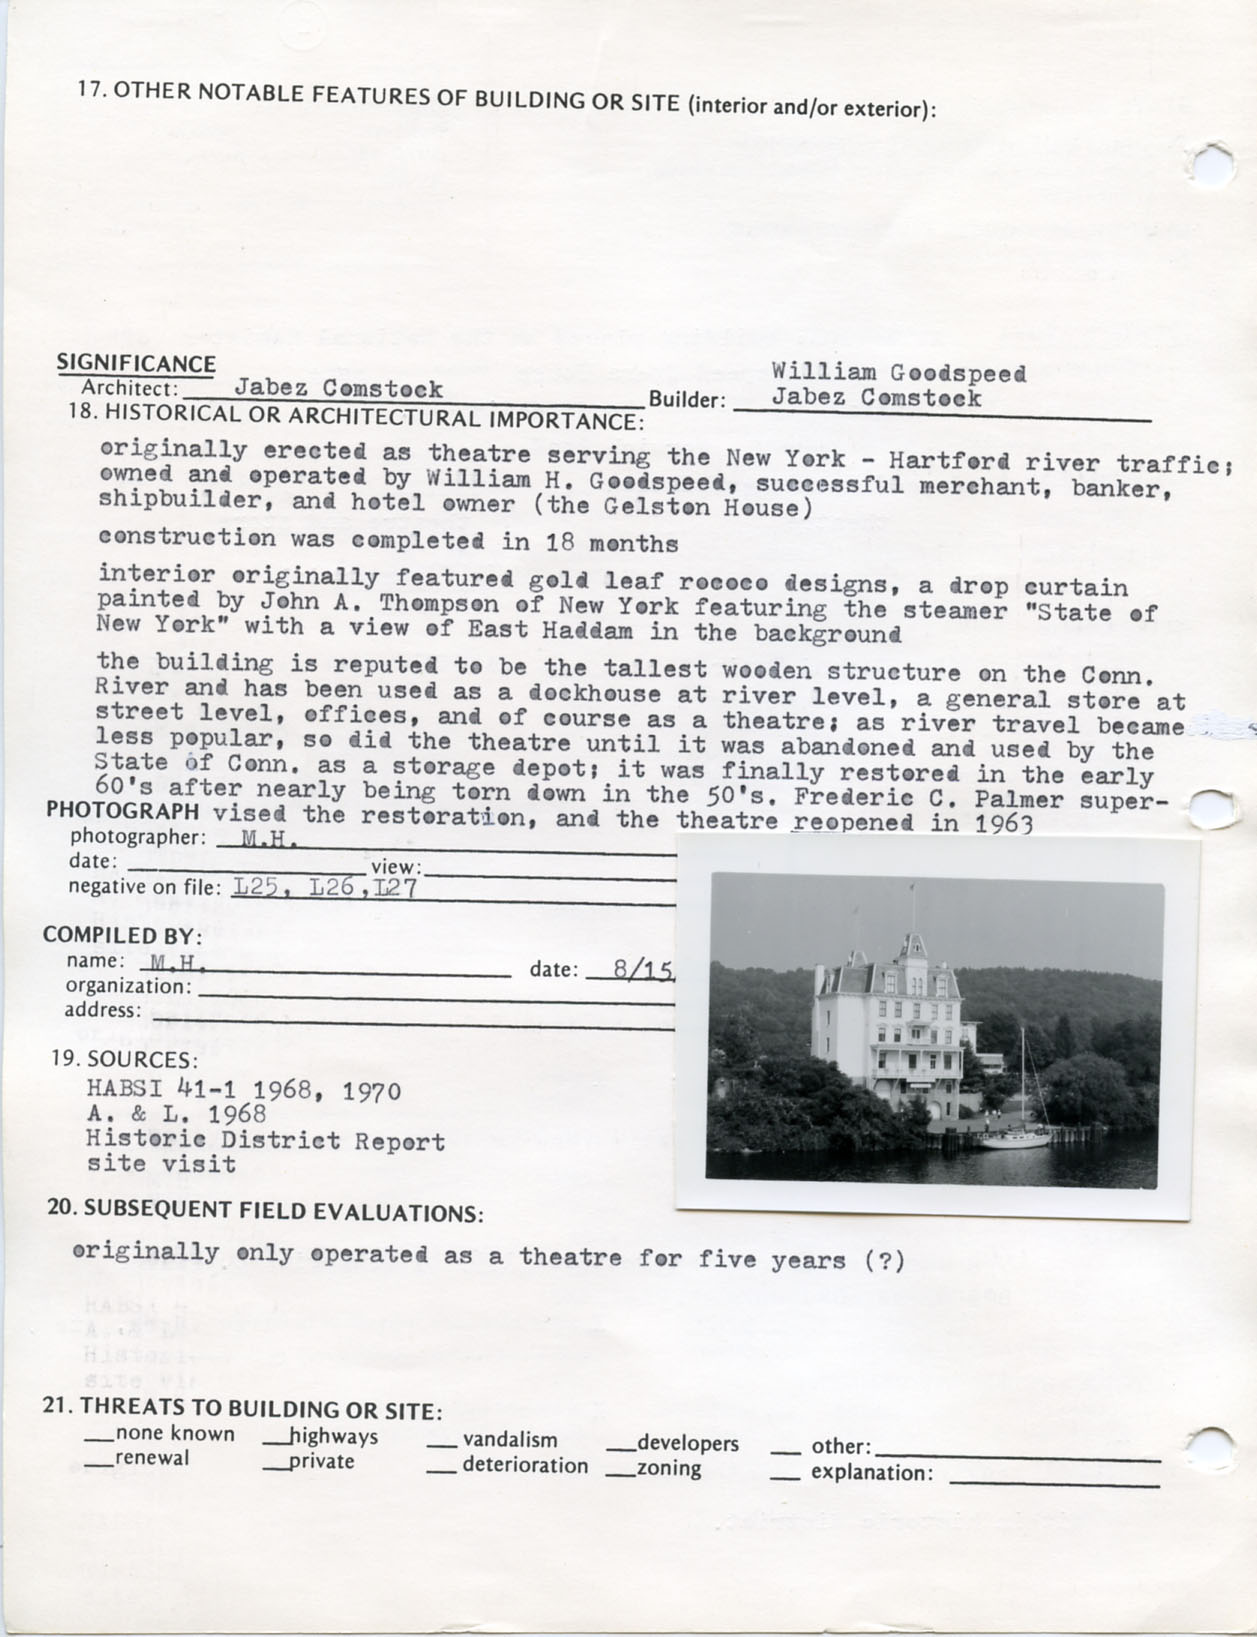 Architectural survey of Goodspeed Opera House in East Hampton, Connecticut, 1977